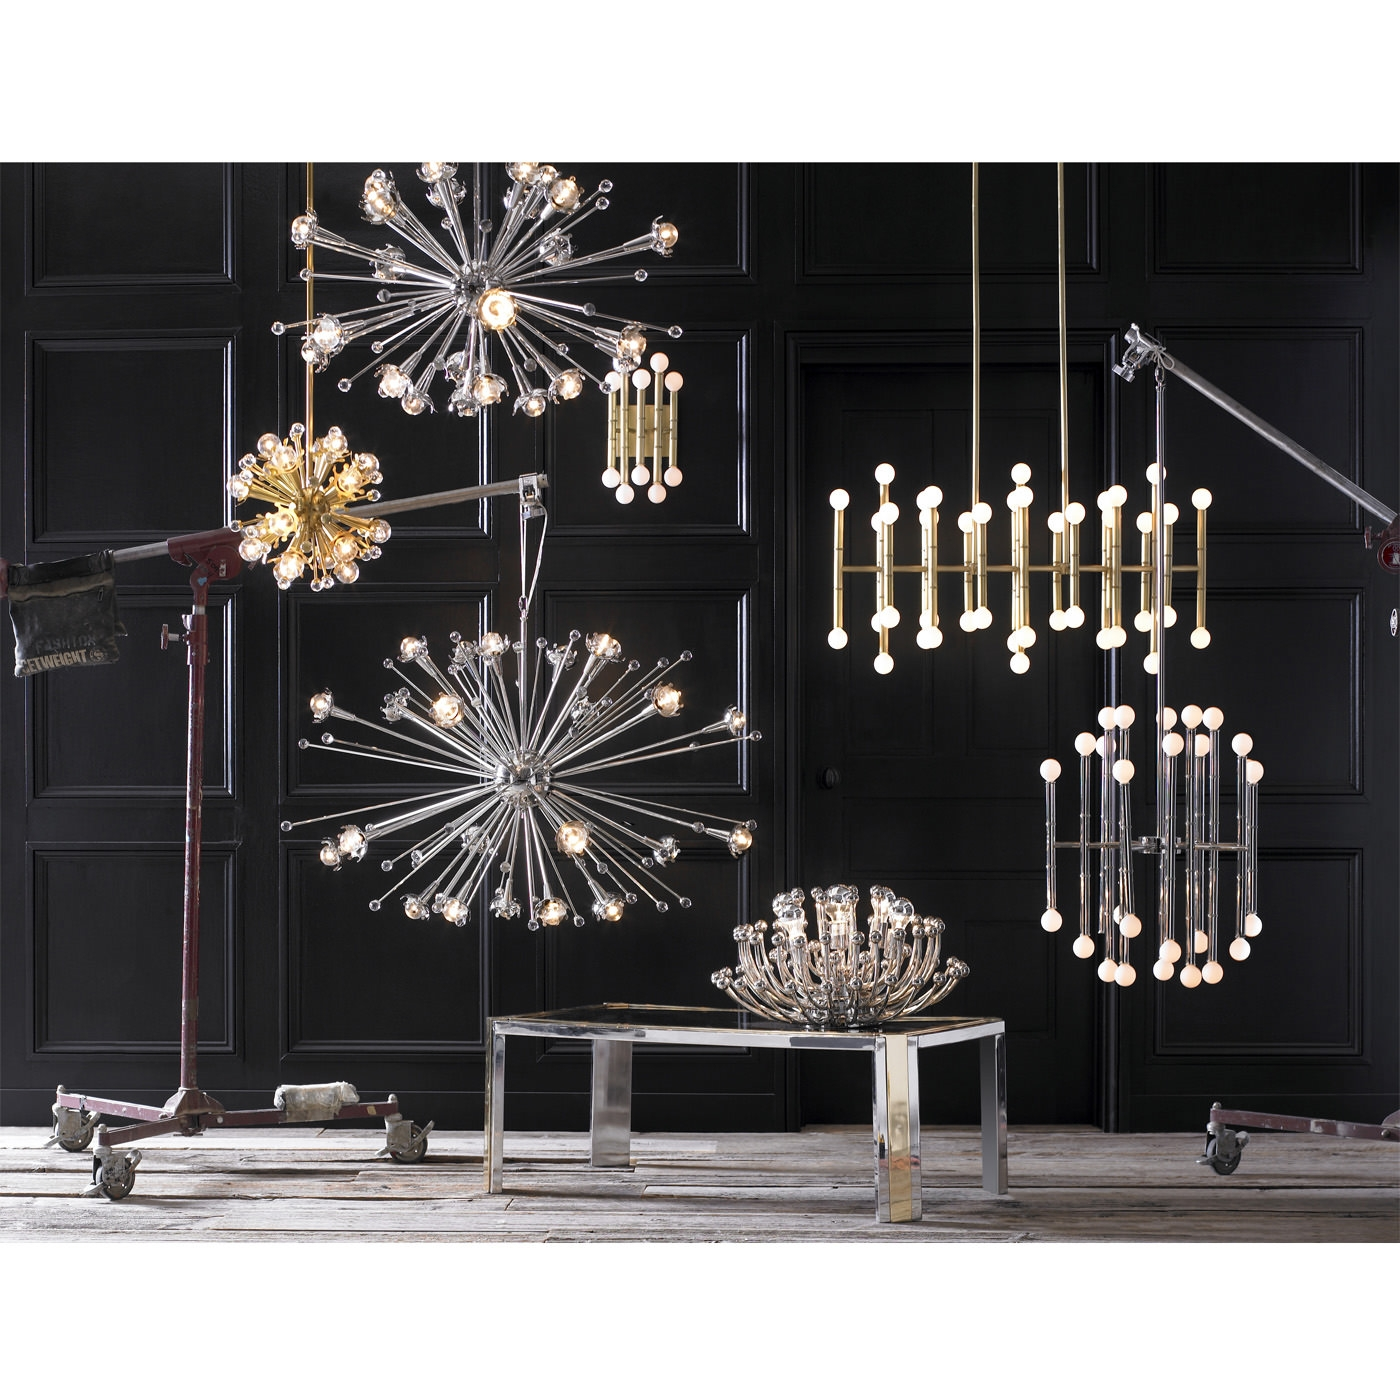 Giant Sputnik Chandelier Modern Lighting Jonathan Adler In Giant Chandeliers (Image 8 of 15)